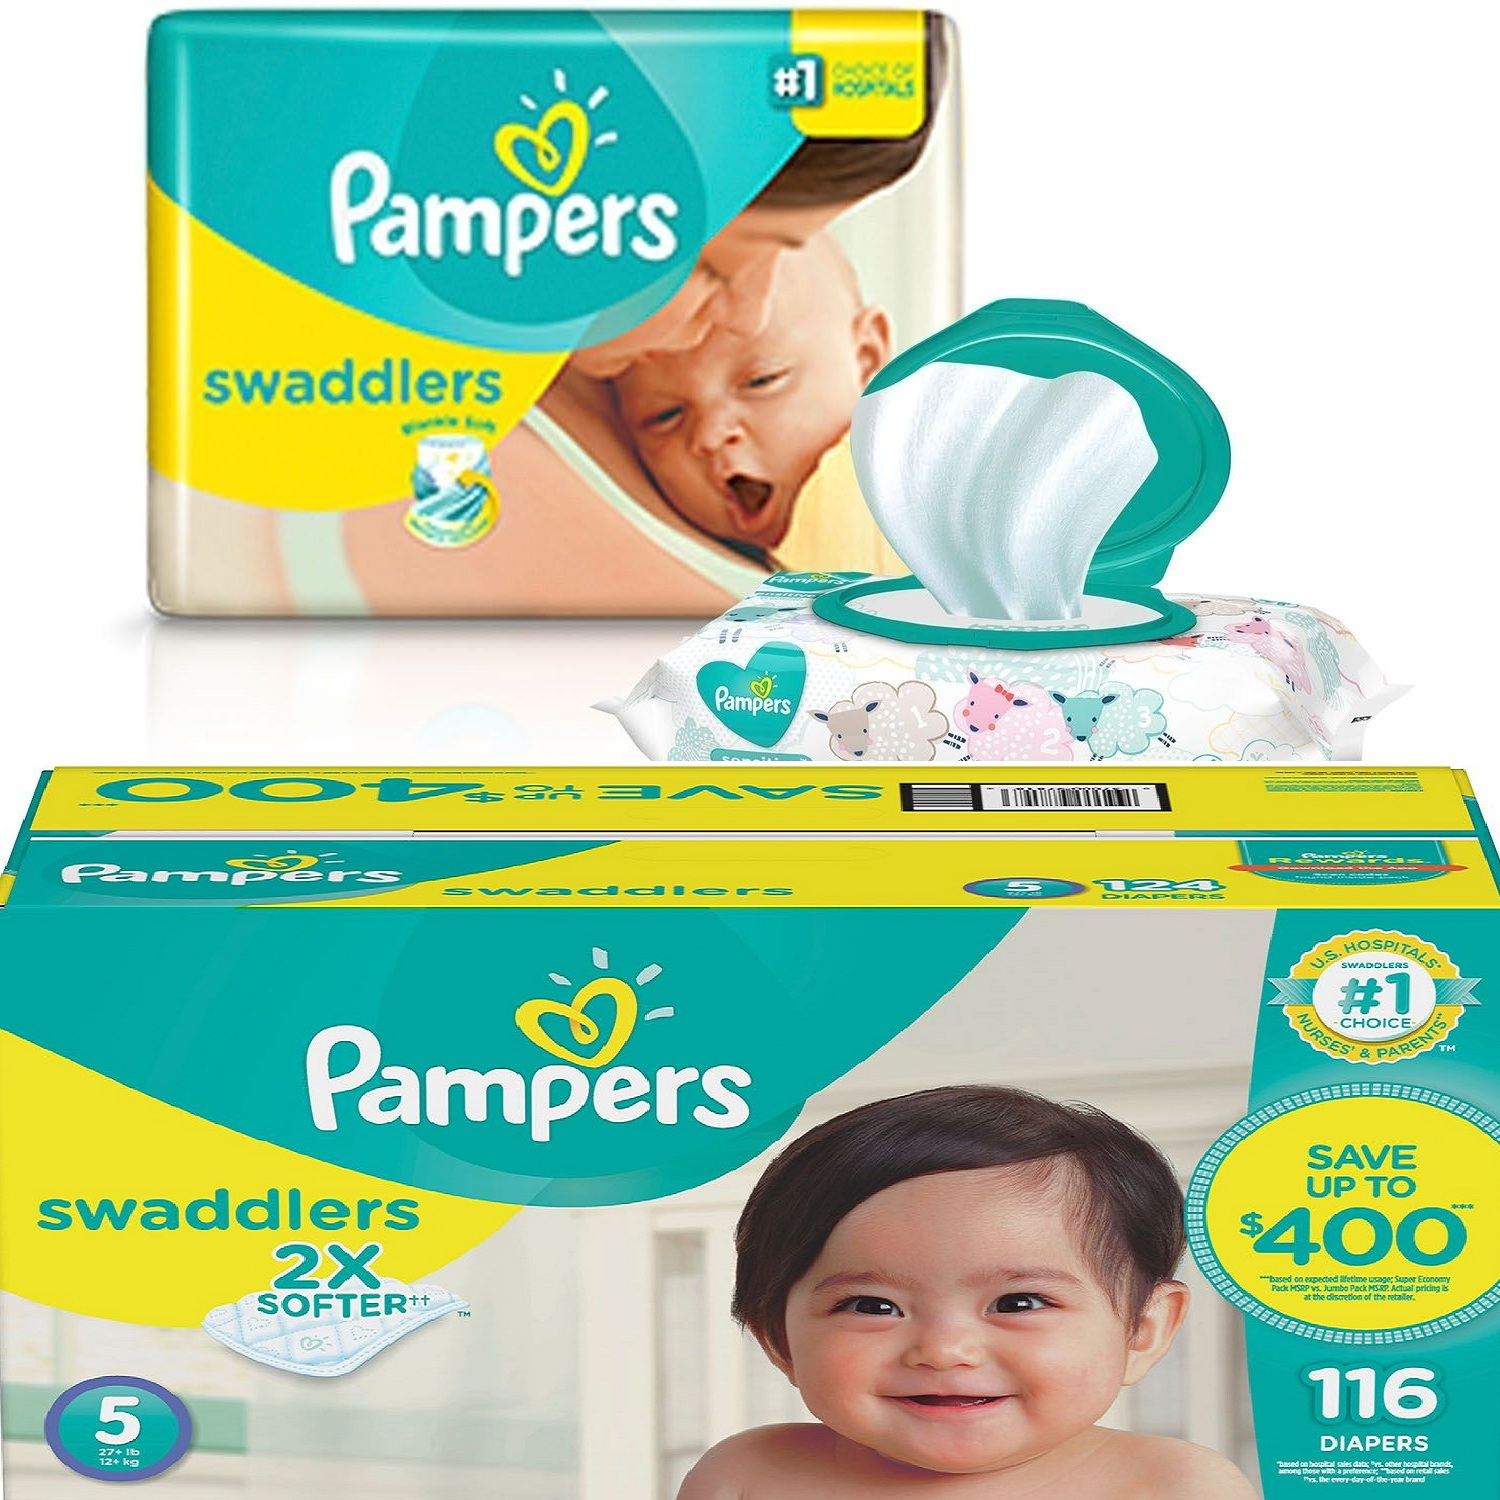 Pampers' Swaddlers Diapers size: 5 -116 ct. (27+ lb.) by Branded Diapers